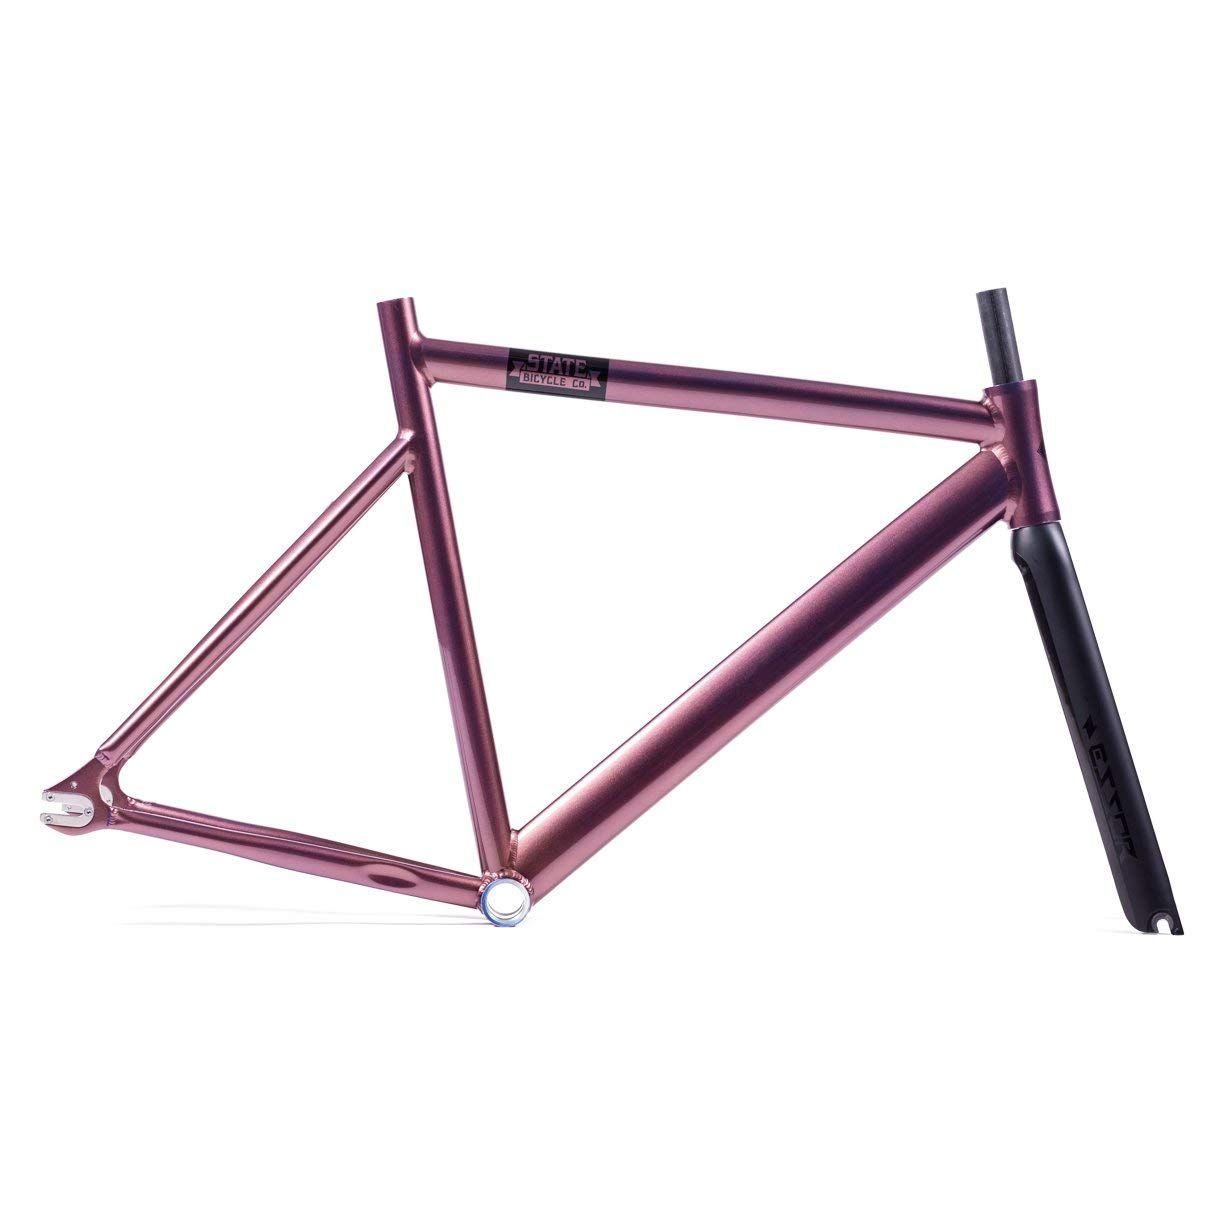 2fbf07d8e2d Full Carbon 3K Glossy 700c Road Bike Bicycle BB30 Frame Fork Seatpost Clamp  50cm ** See the photo link even more details. (This is an af… | Bike Frames  ...